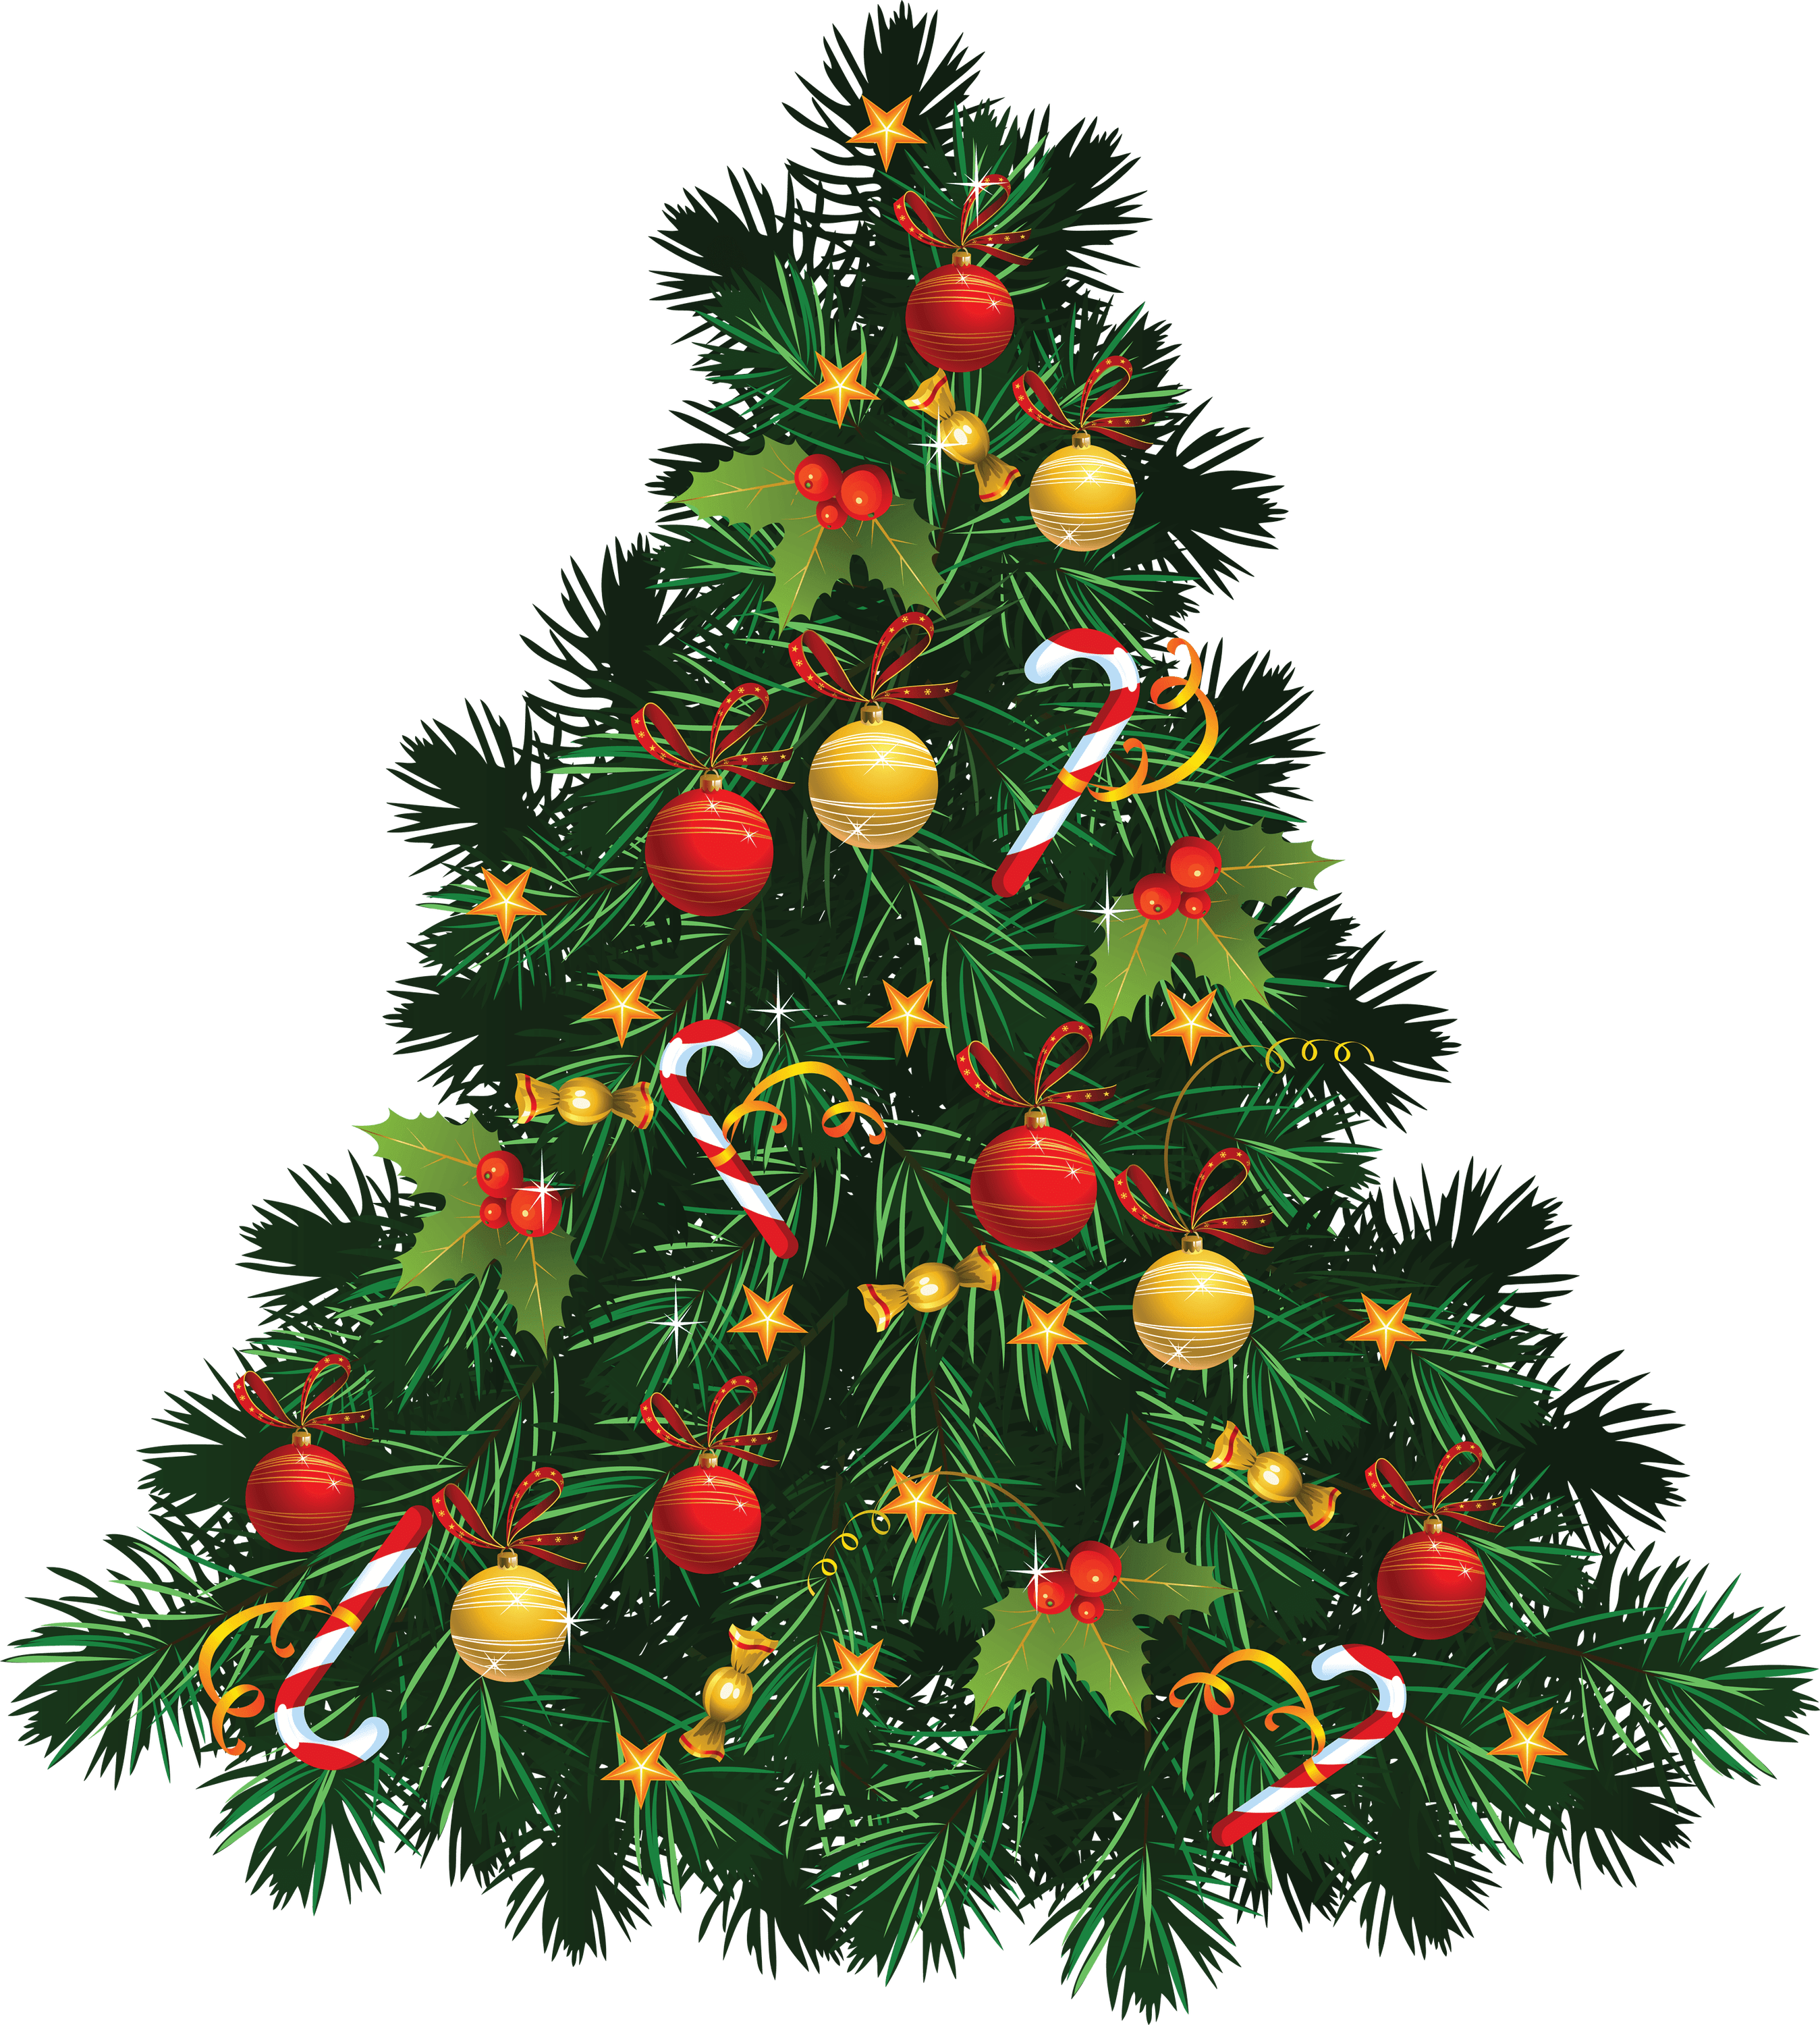 Christmas images png. Tree snow transparent stickpng